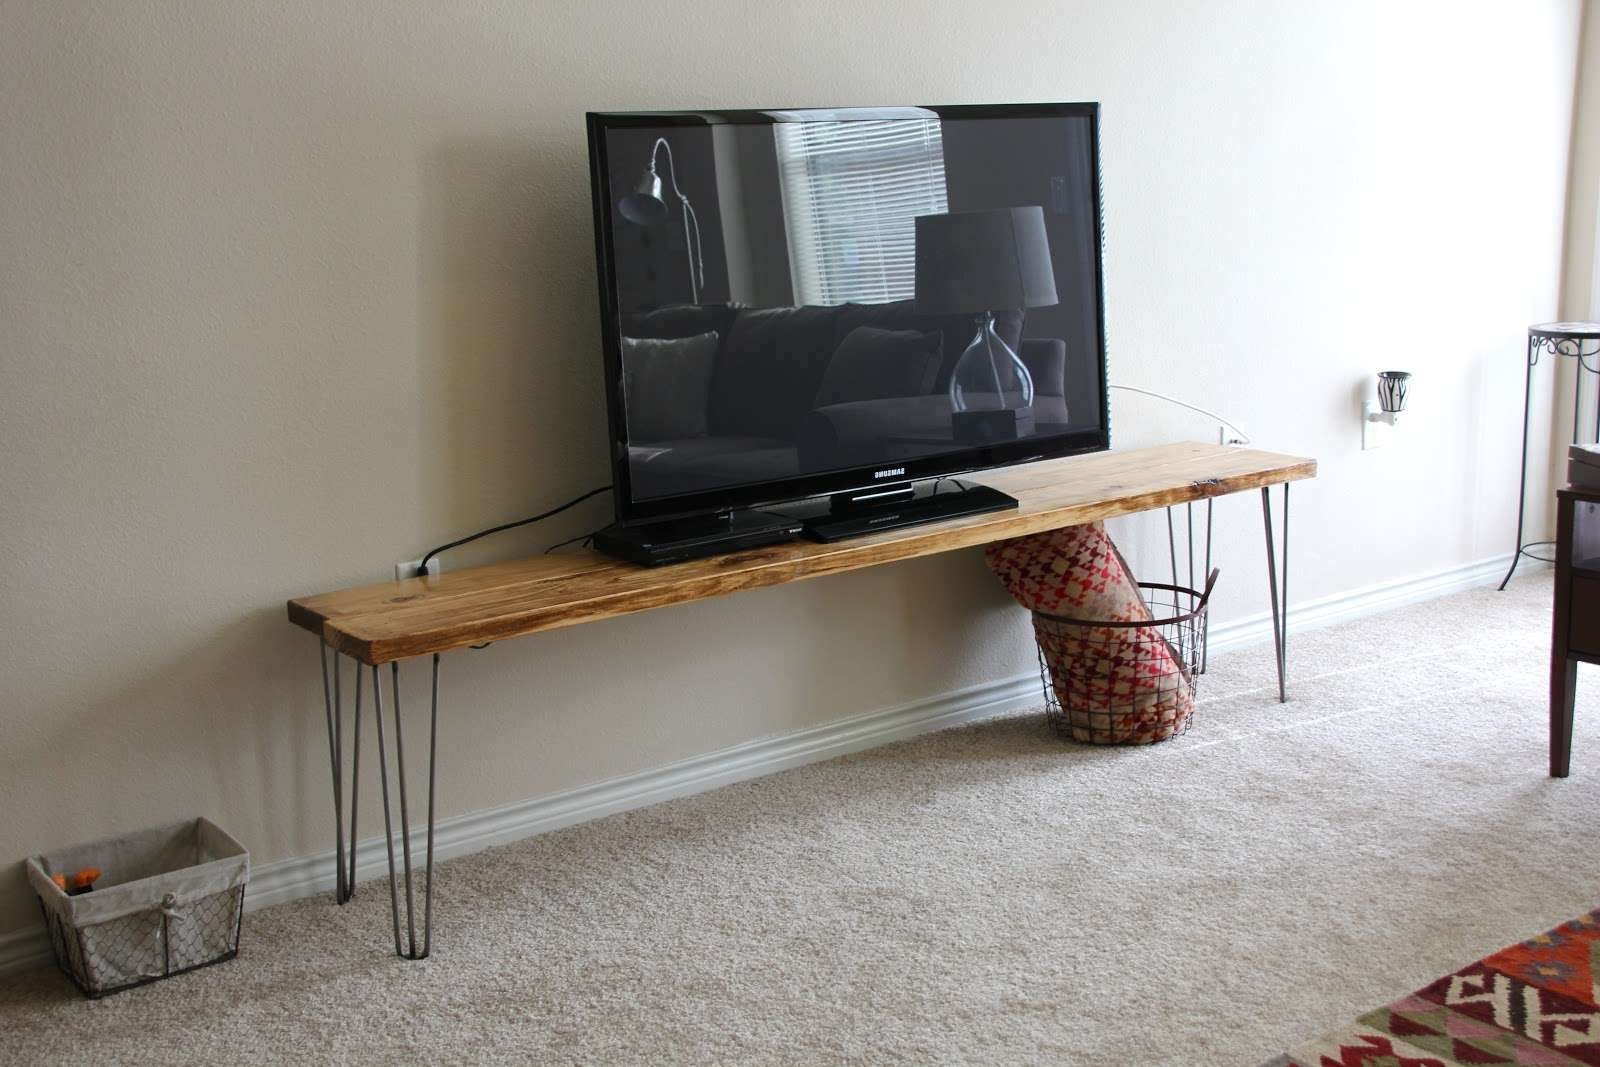 Cool Diy Narrow Wood Industrial Tv Stands With Hairpin Legs Ideas Within Cool Tv Stands (View 5 of 15)